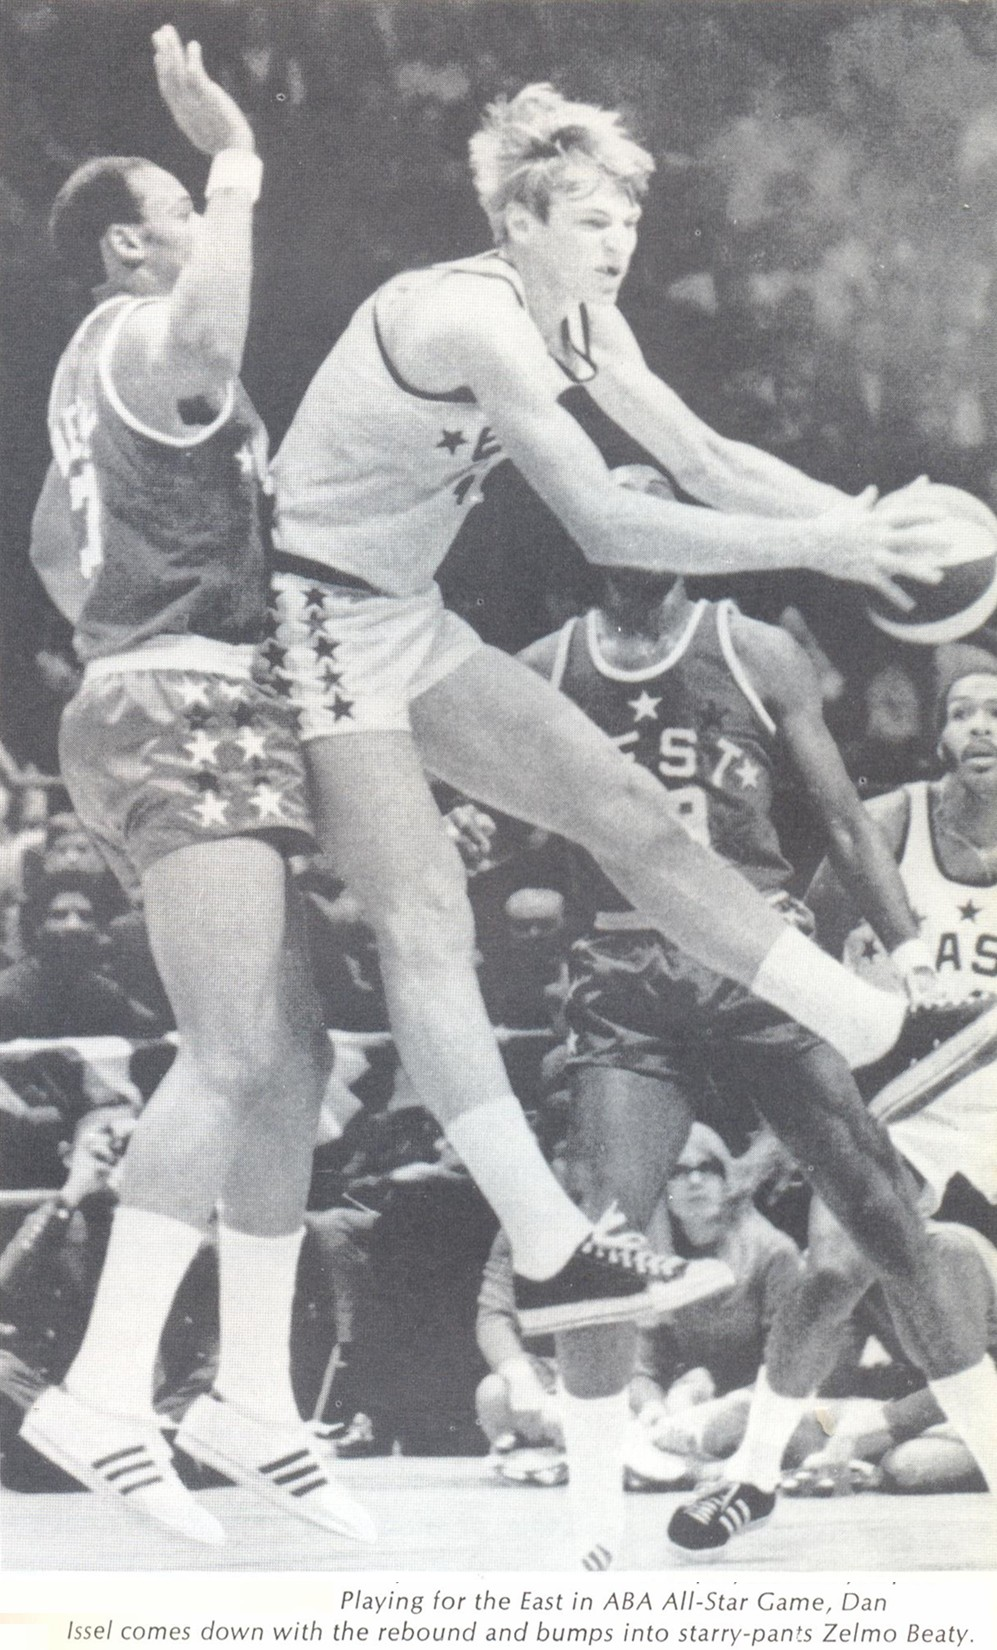 All-Star 70-71 East Dan Issel, Zelmo Beaty.jpg